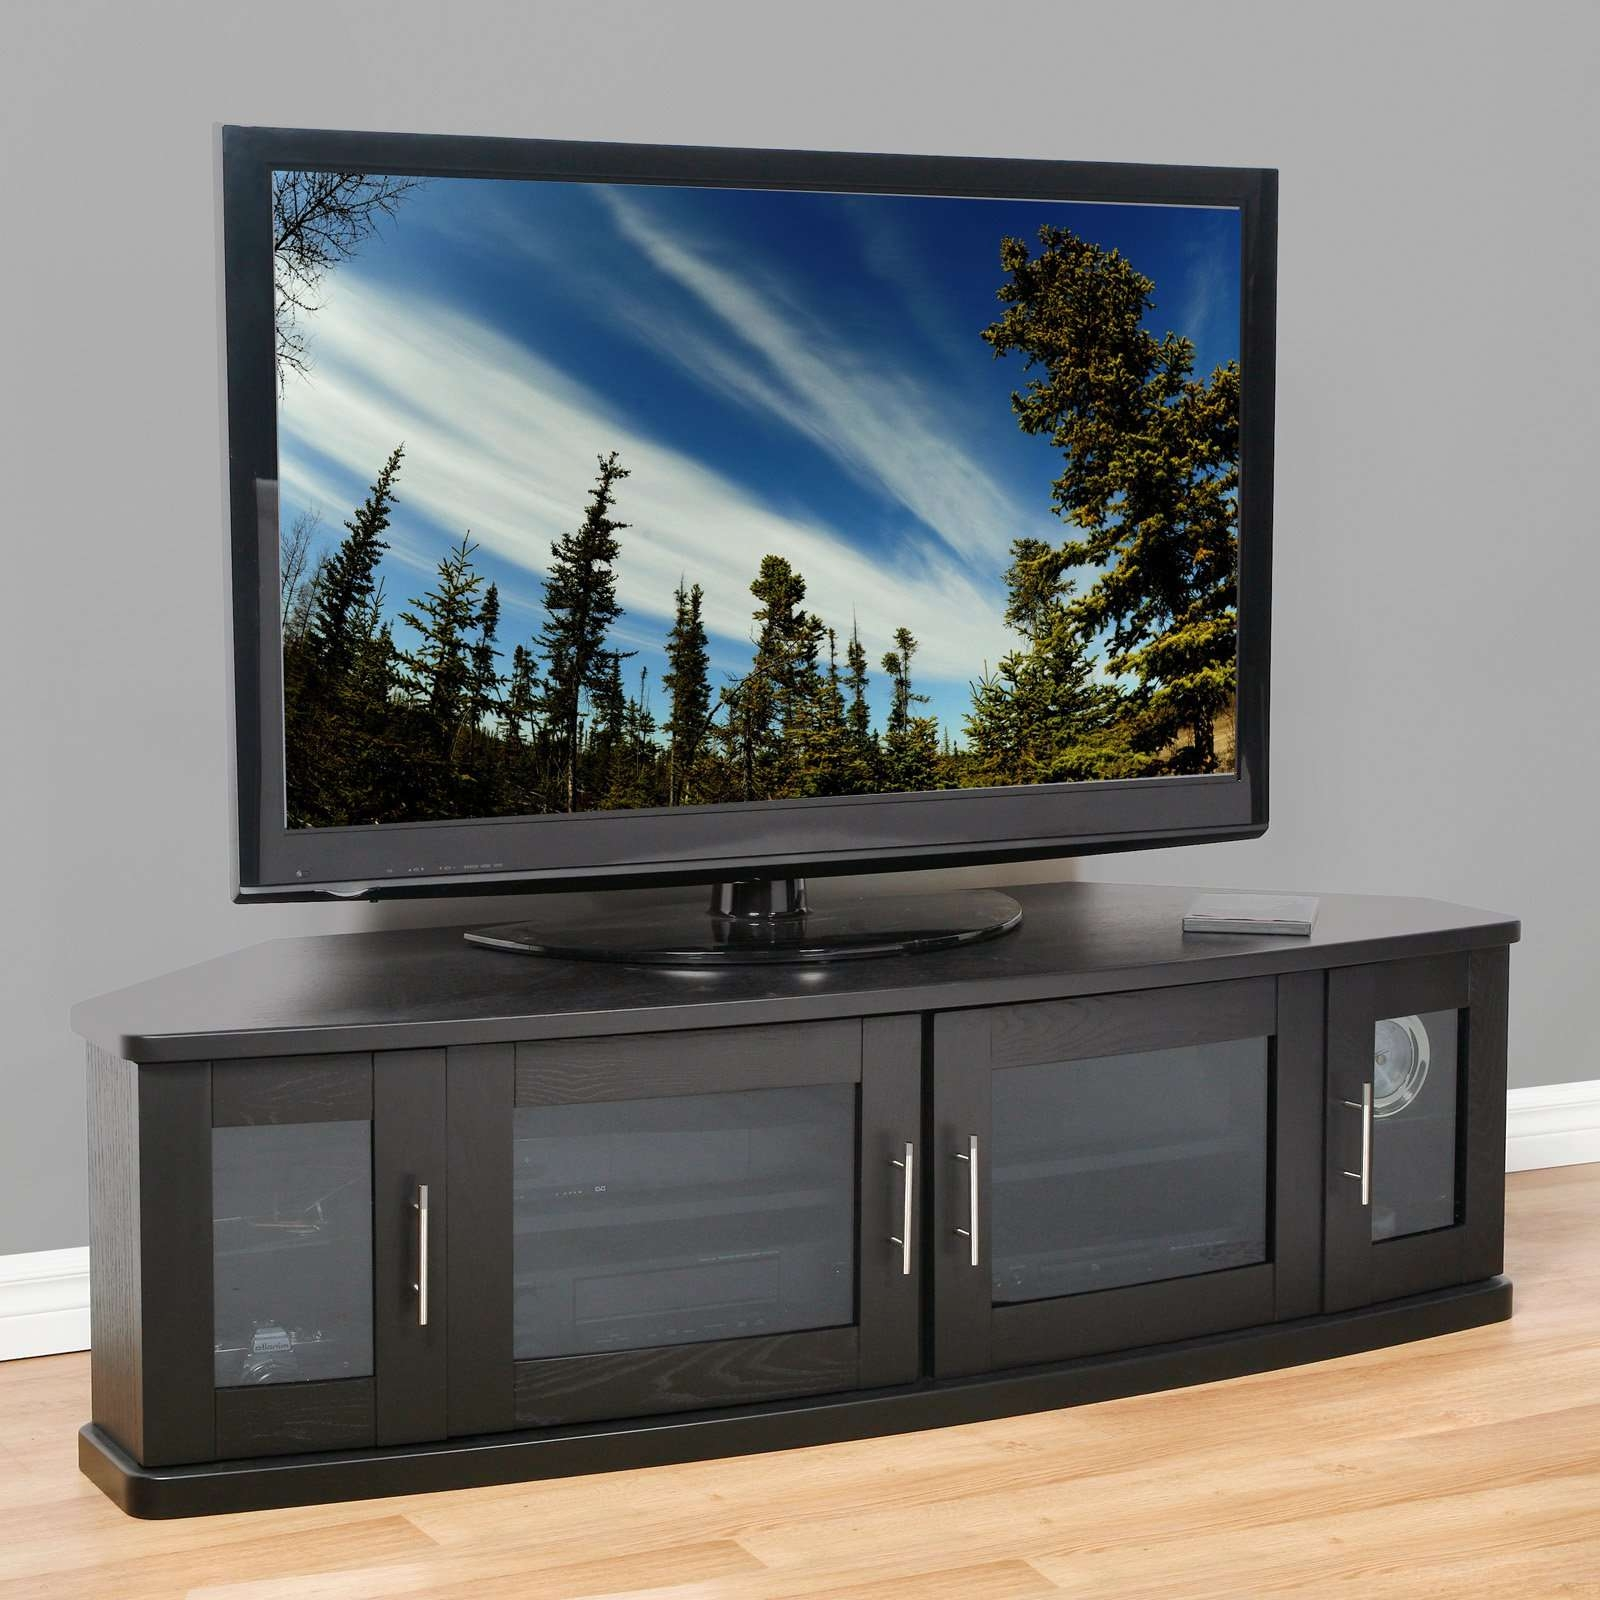 Large Corner Tv Cabinet With 4 Glass Doors And Silver Handle Regarding Black Corner Tv Cabinets With Glass Doors (View 7 of 20)